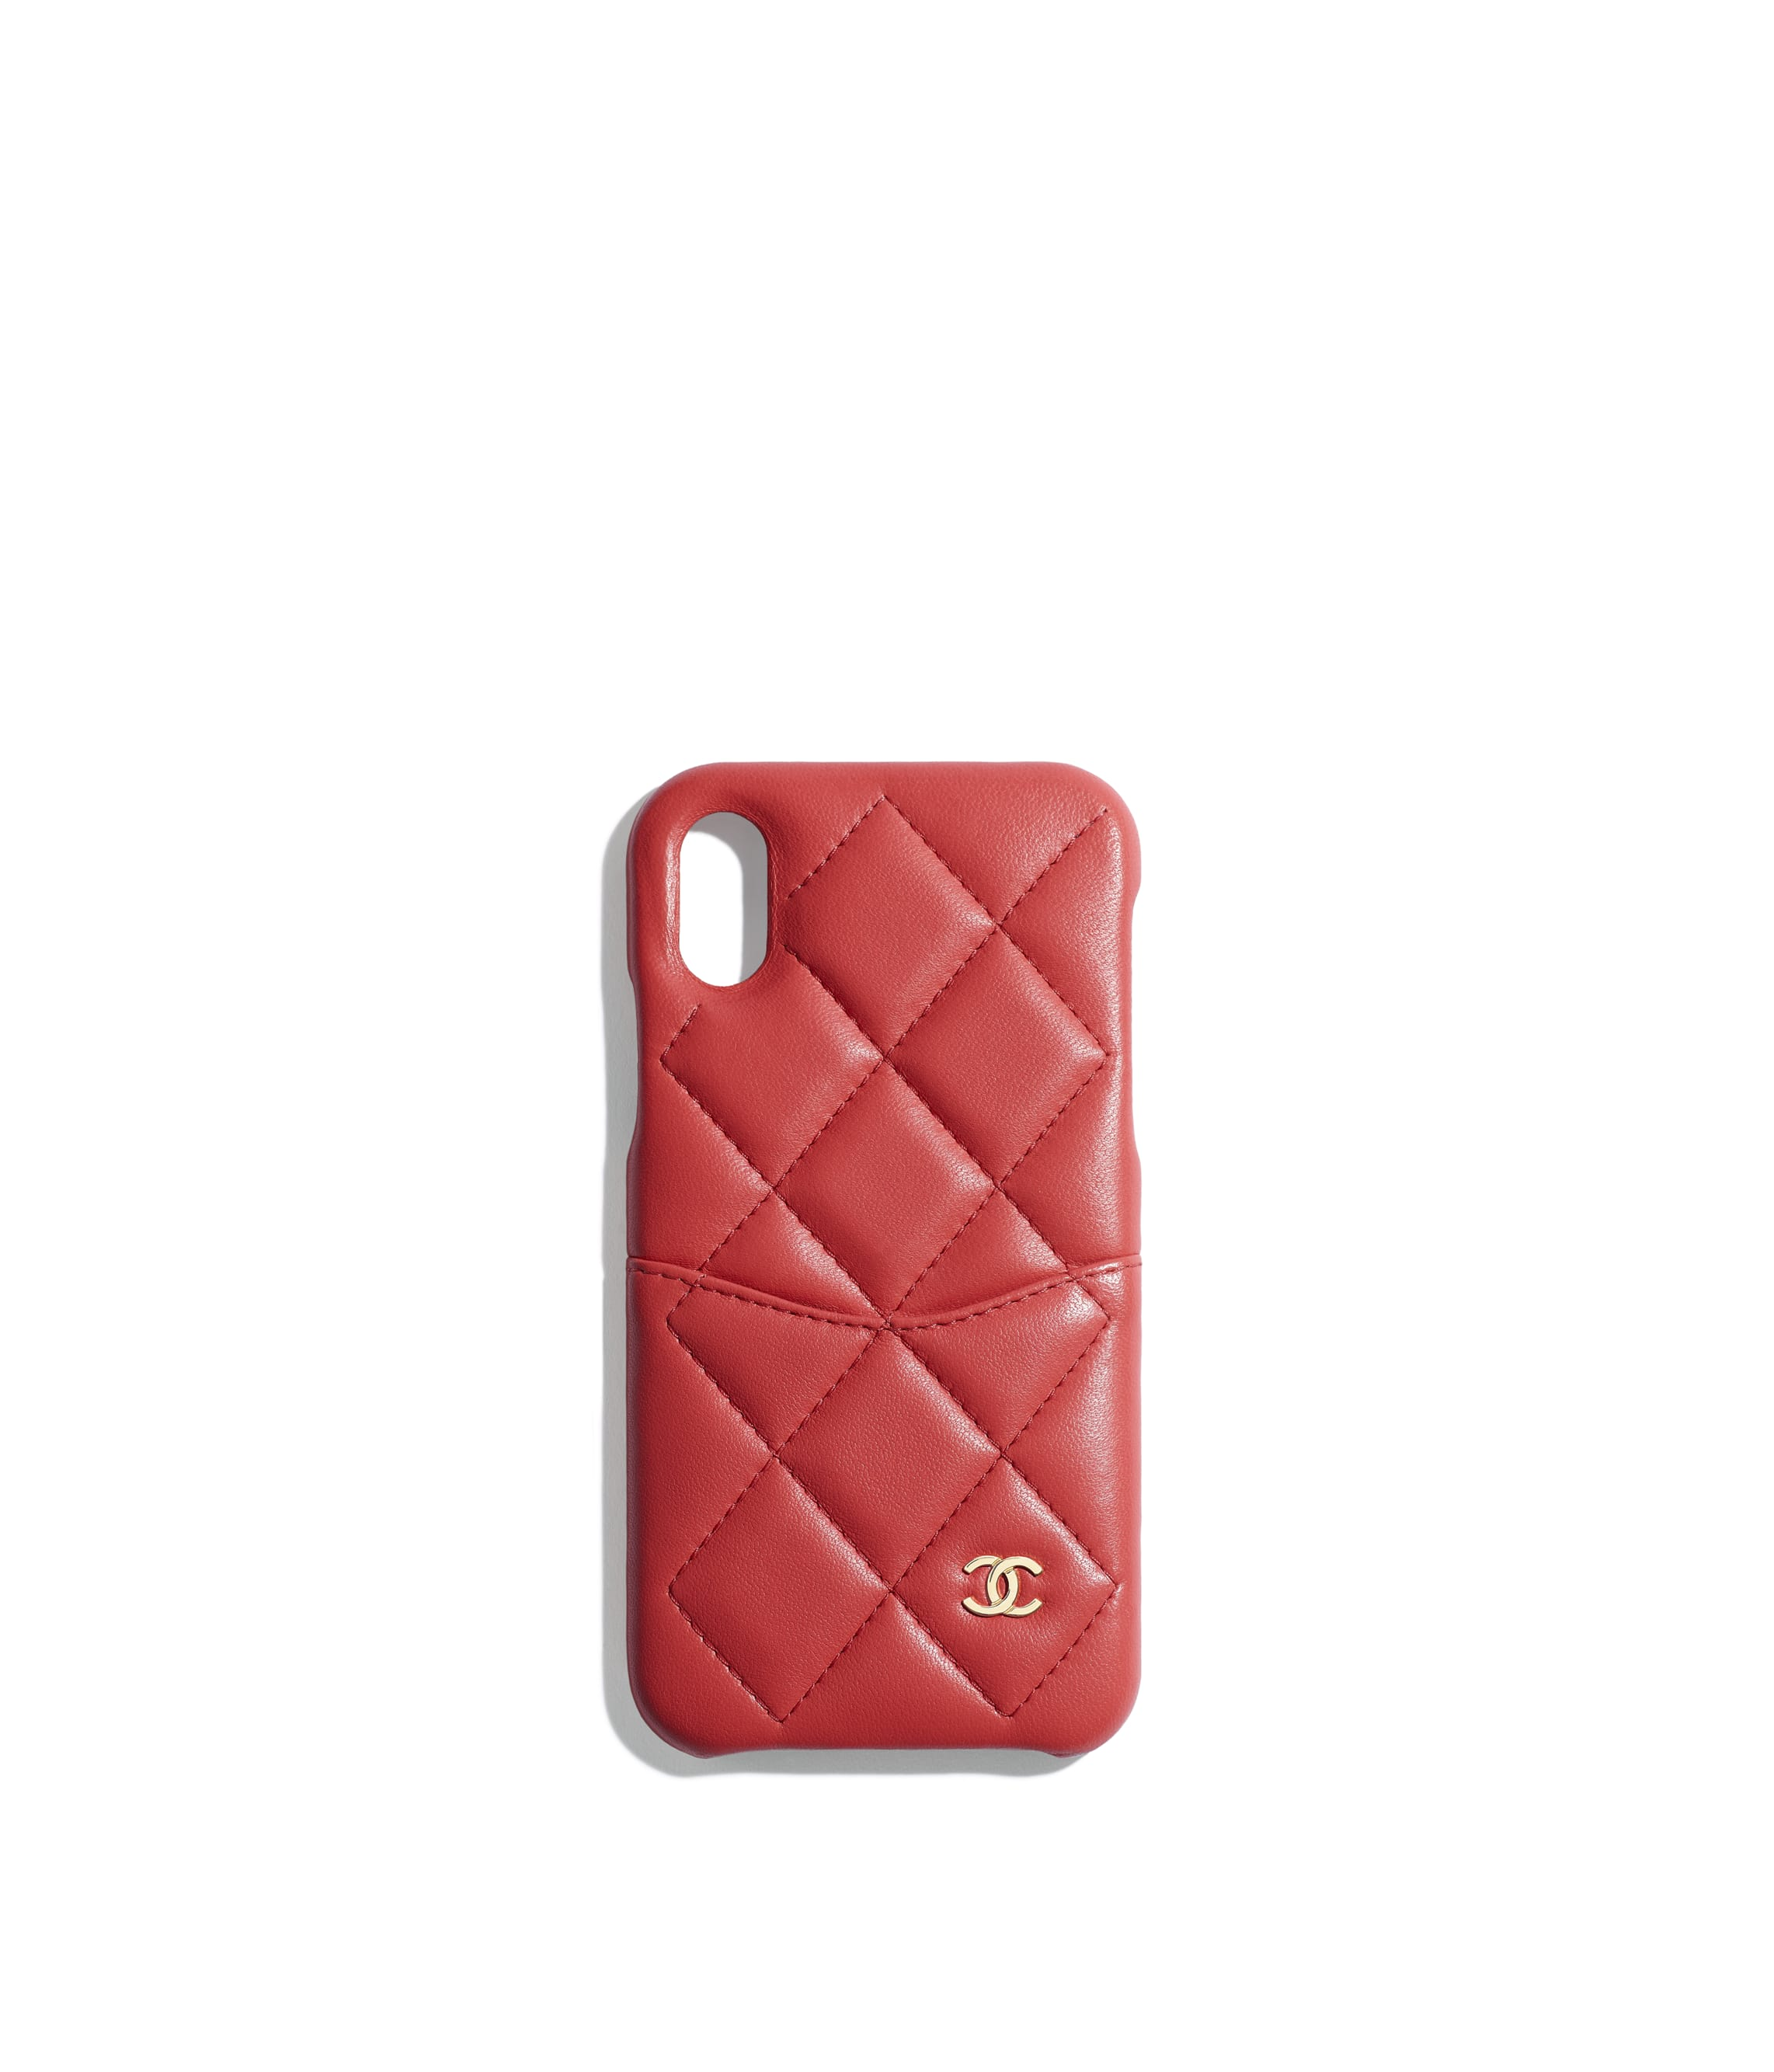 4a78aff4f5138d Classic - Small Leather Goods - CHANEL